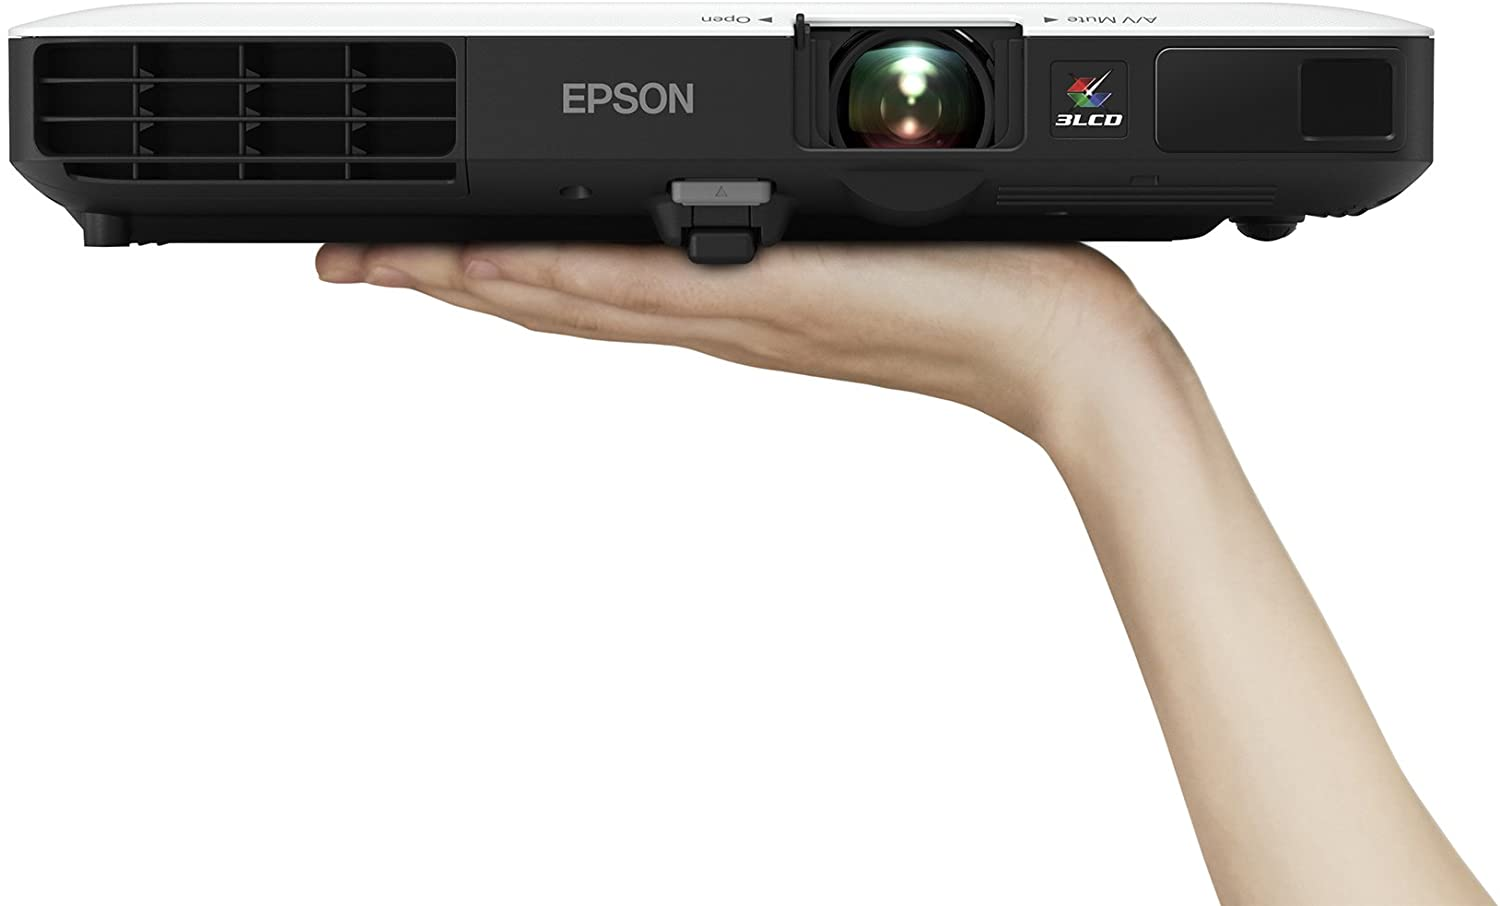 Epson PowerLite 1785W 3LCD WXGA wireless mobile projector with carrying case and fast and easy image adjustments. A bright fully equipped solution for presentations and wireless video streaming